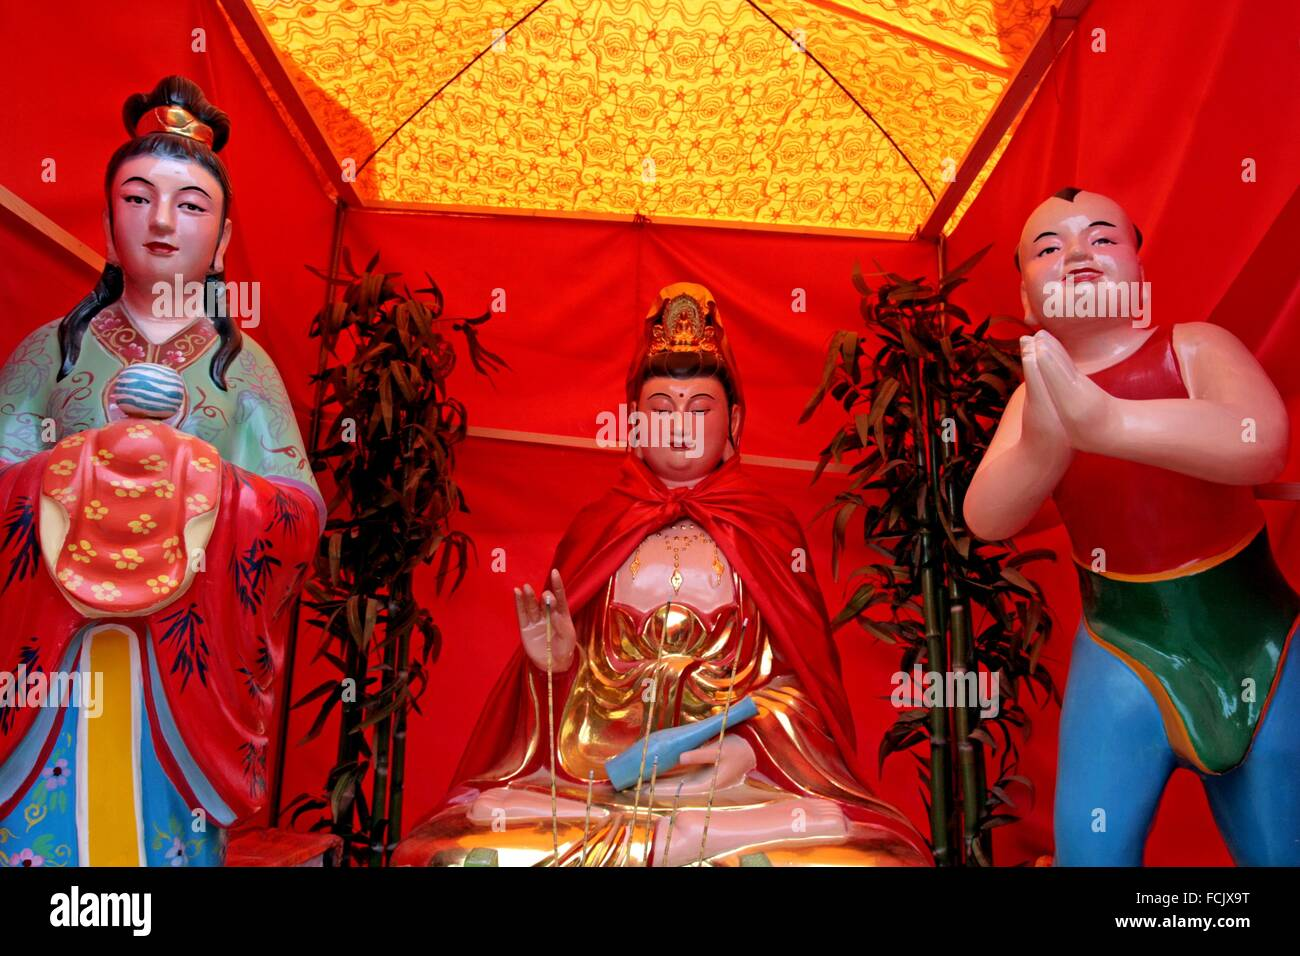 Altar, celebration of Chinese New Year, Year of the Goat, Barcelona, Catalonia, Spain - Stock Image